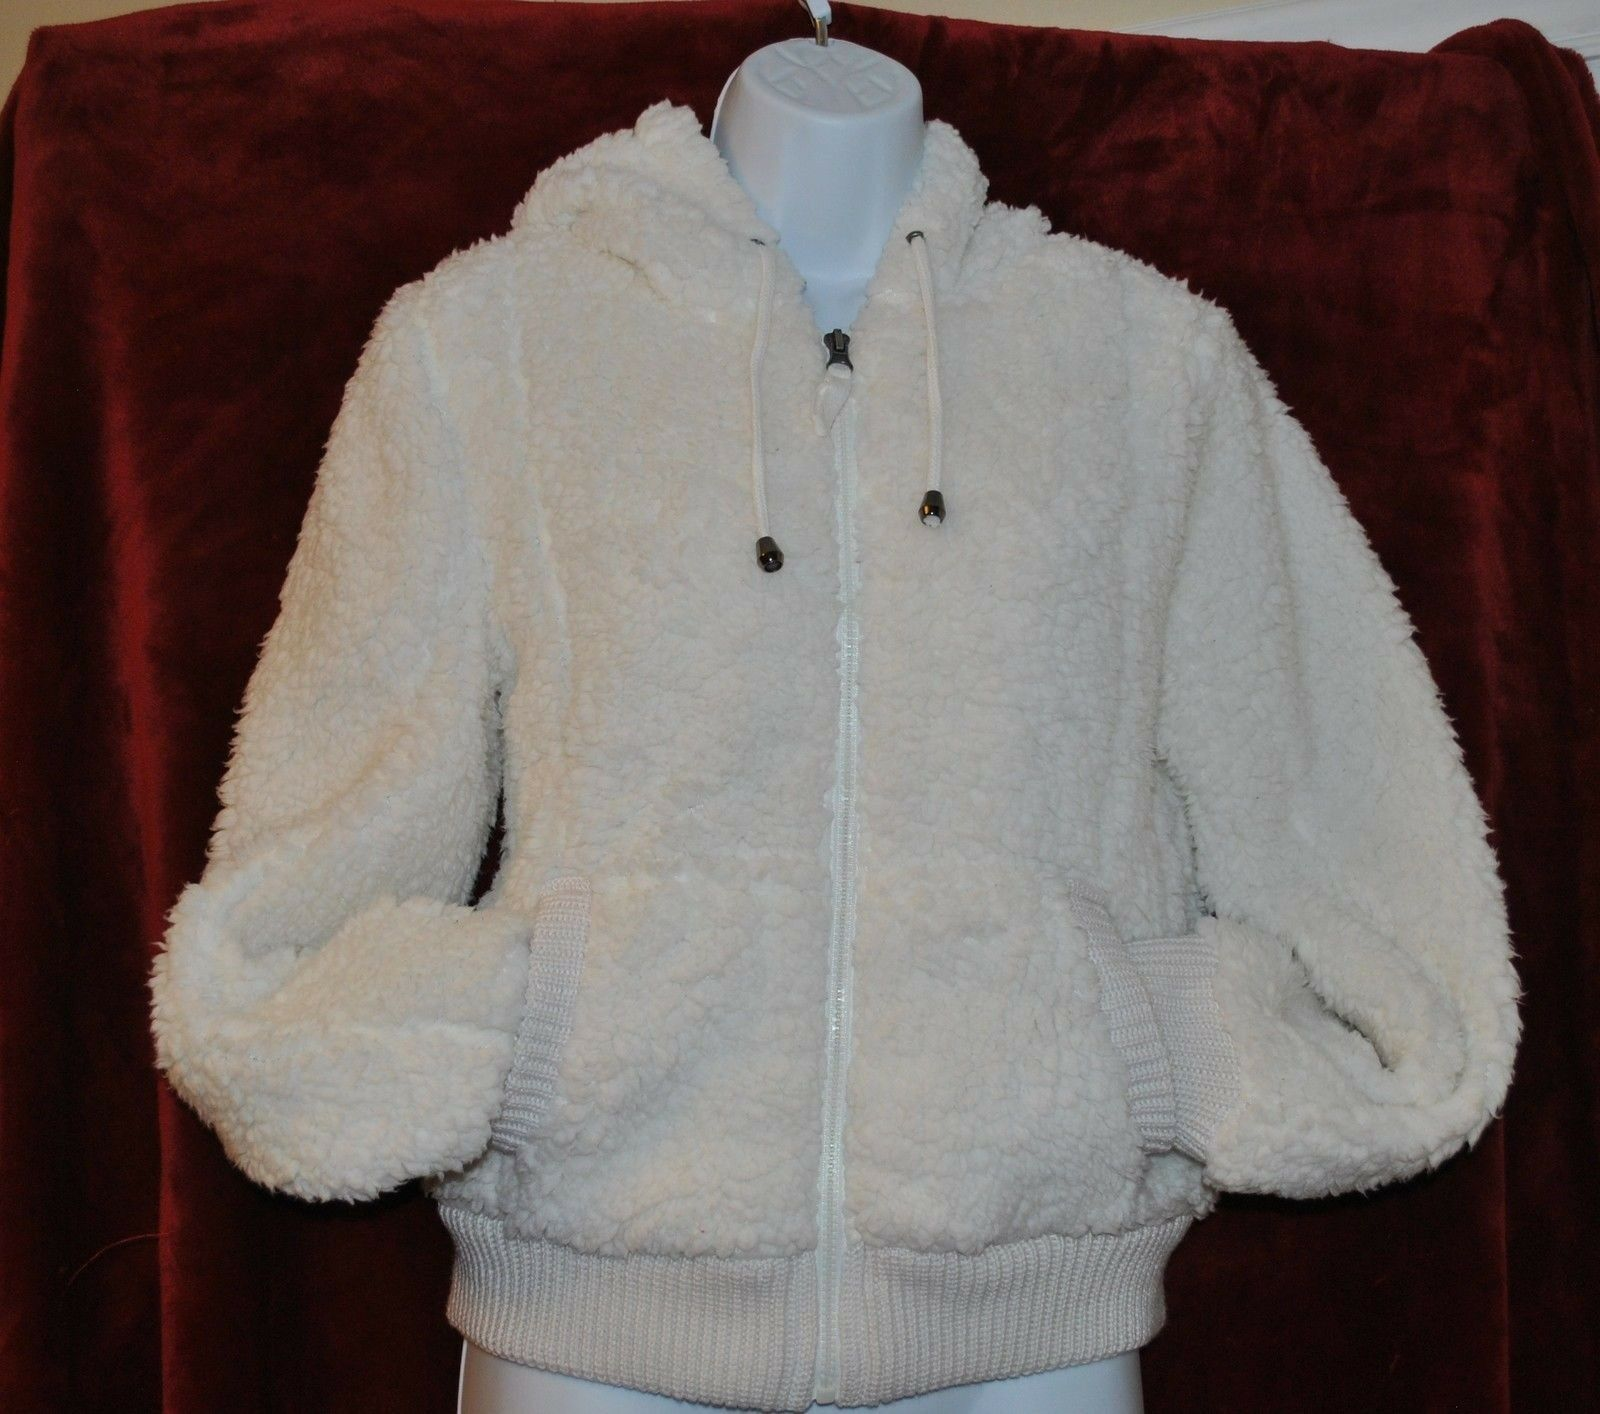 NWT WOMAN'S HANNAH COAT SIZE S